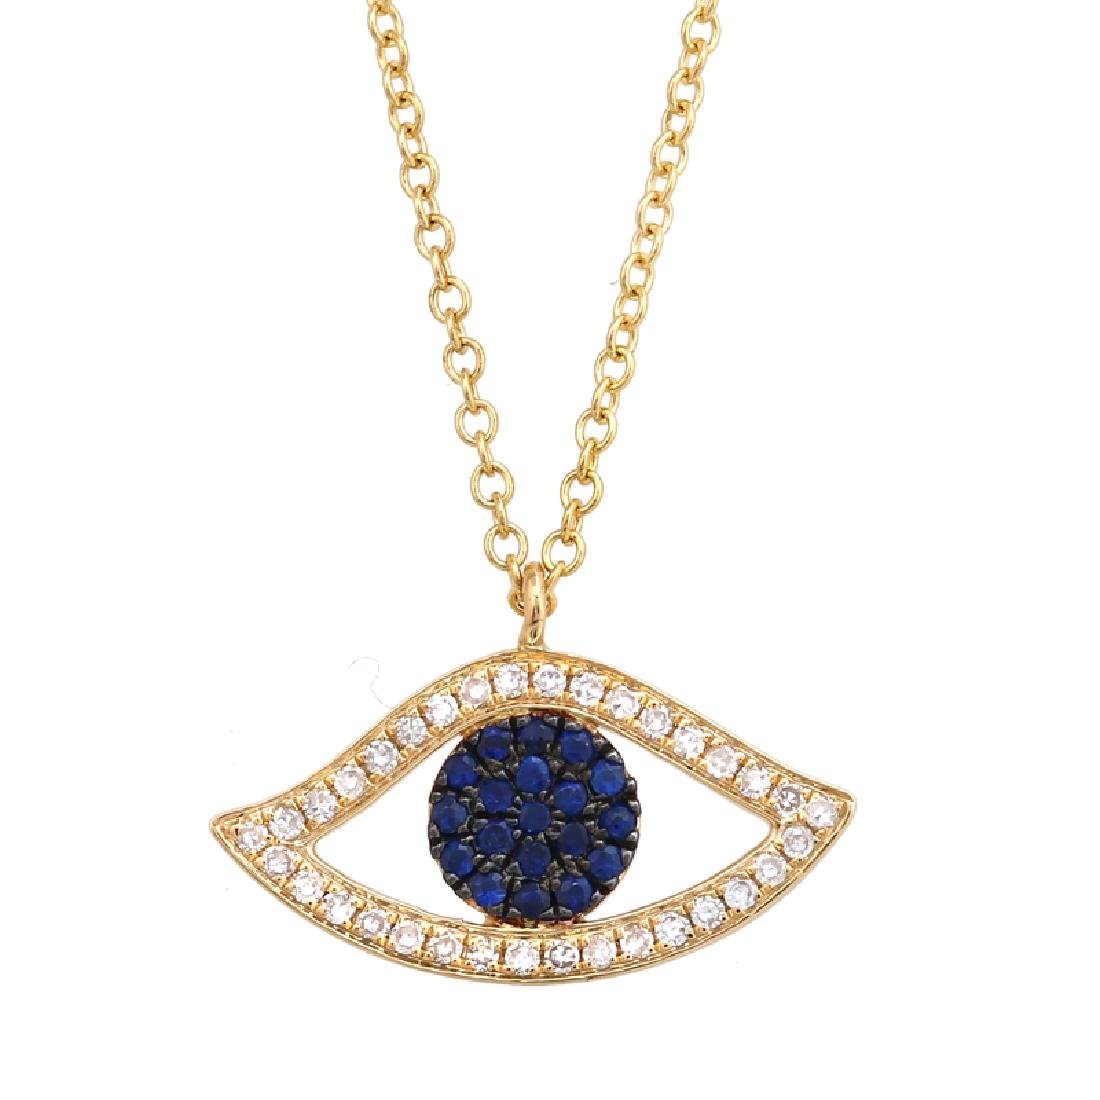 14KT Yellow Gold Gemstone Pendant With Chain - 2